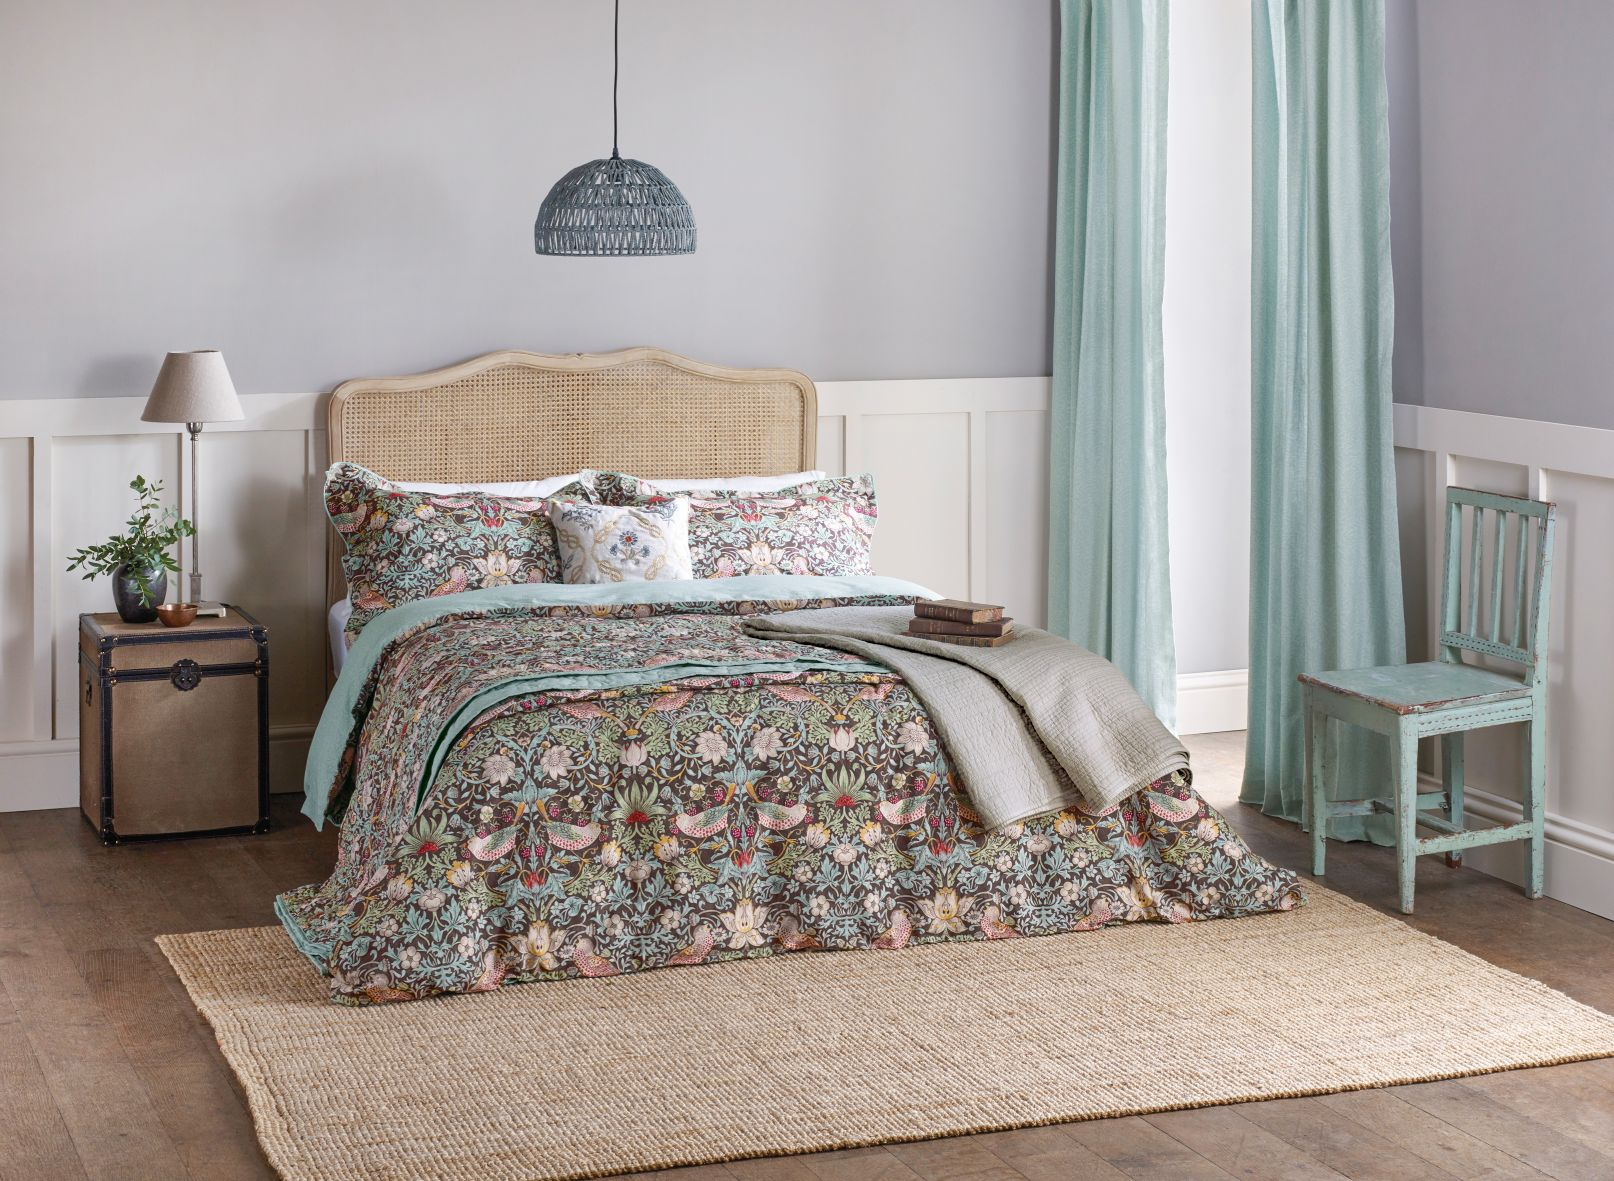 8the-french-bedroom-co_1strawberry-thief-bed-linen-by-morris-amp-co-lifestyle.jpg